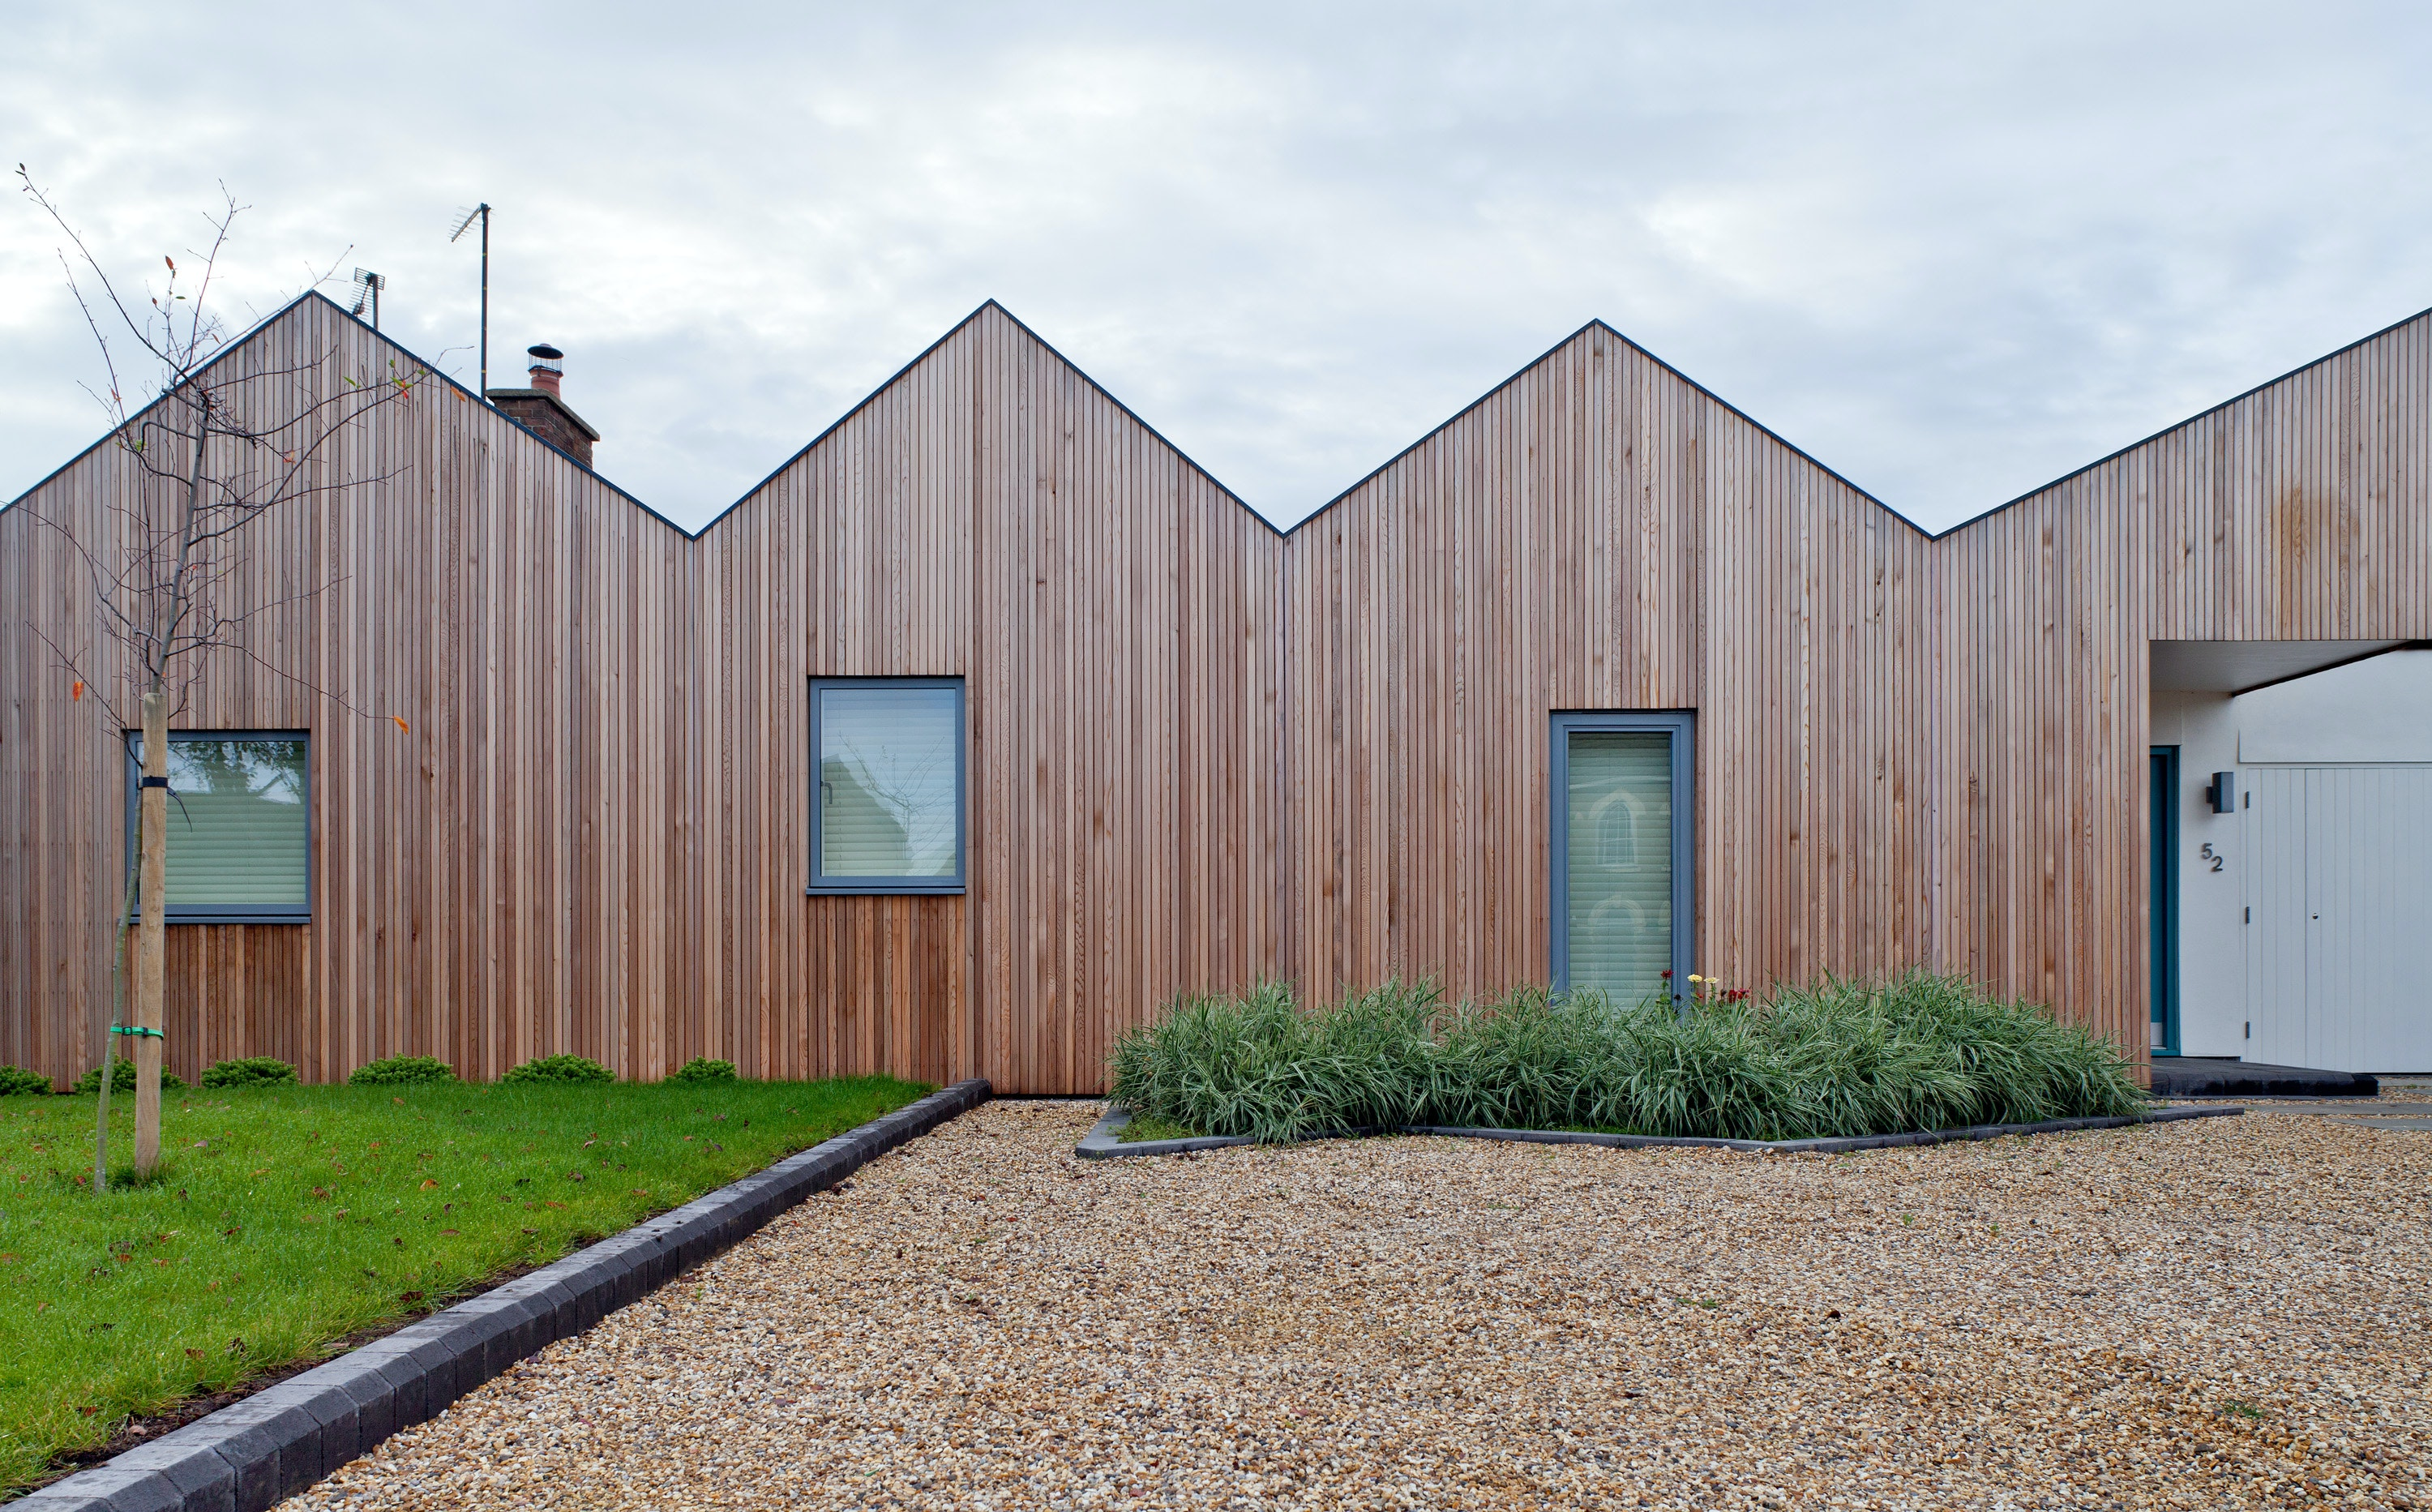 View Similar Images & See Truth in Saw-Tooth Roofs - Architizer memphite.com